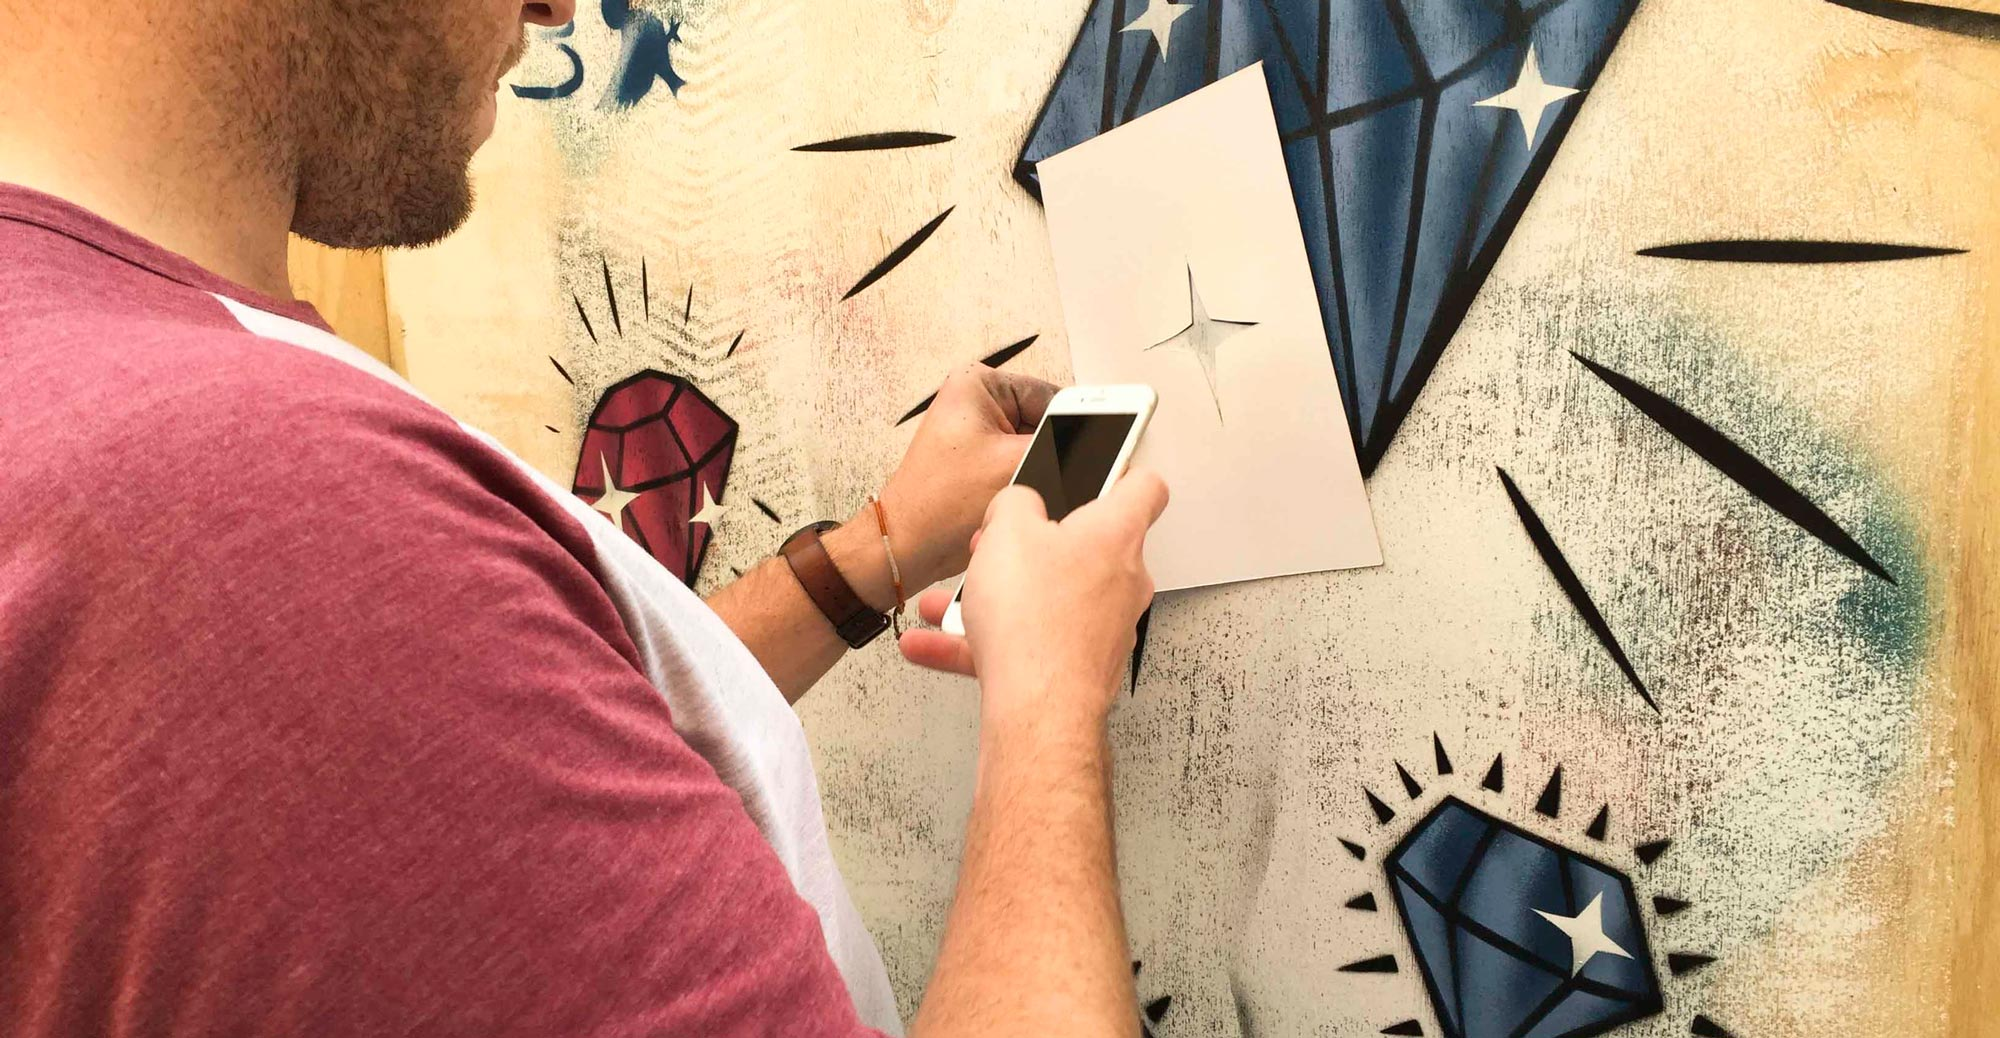 The open to public graffiti session during the Bendigo street festival was a great way to get more interest in the graffiti prevention program